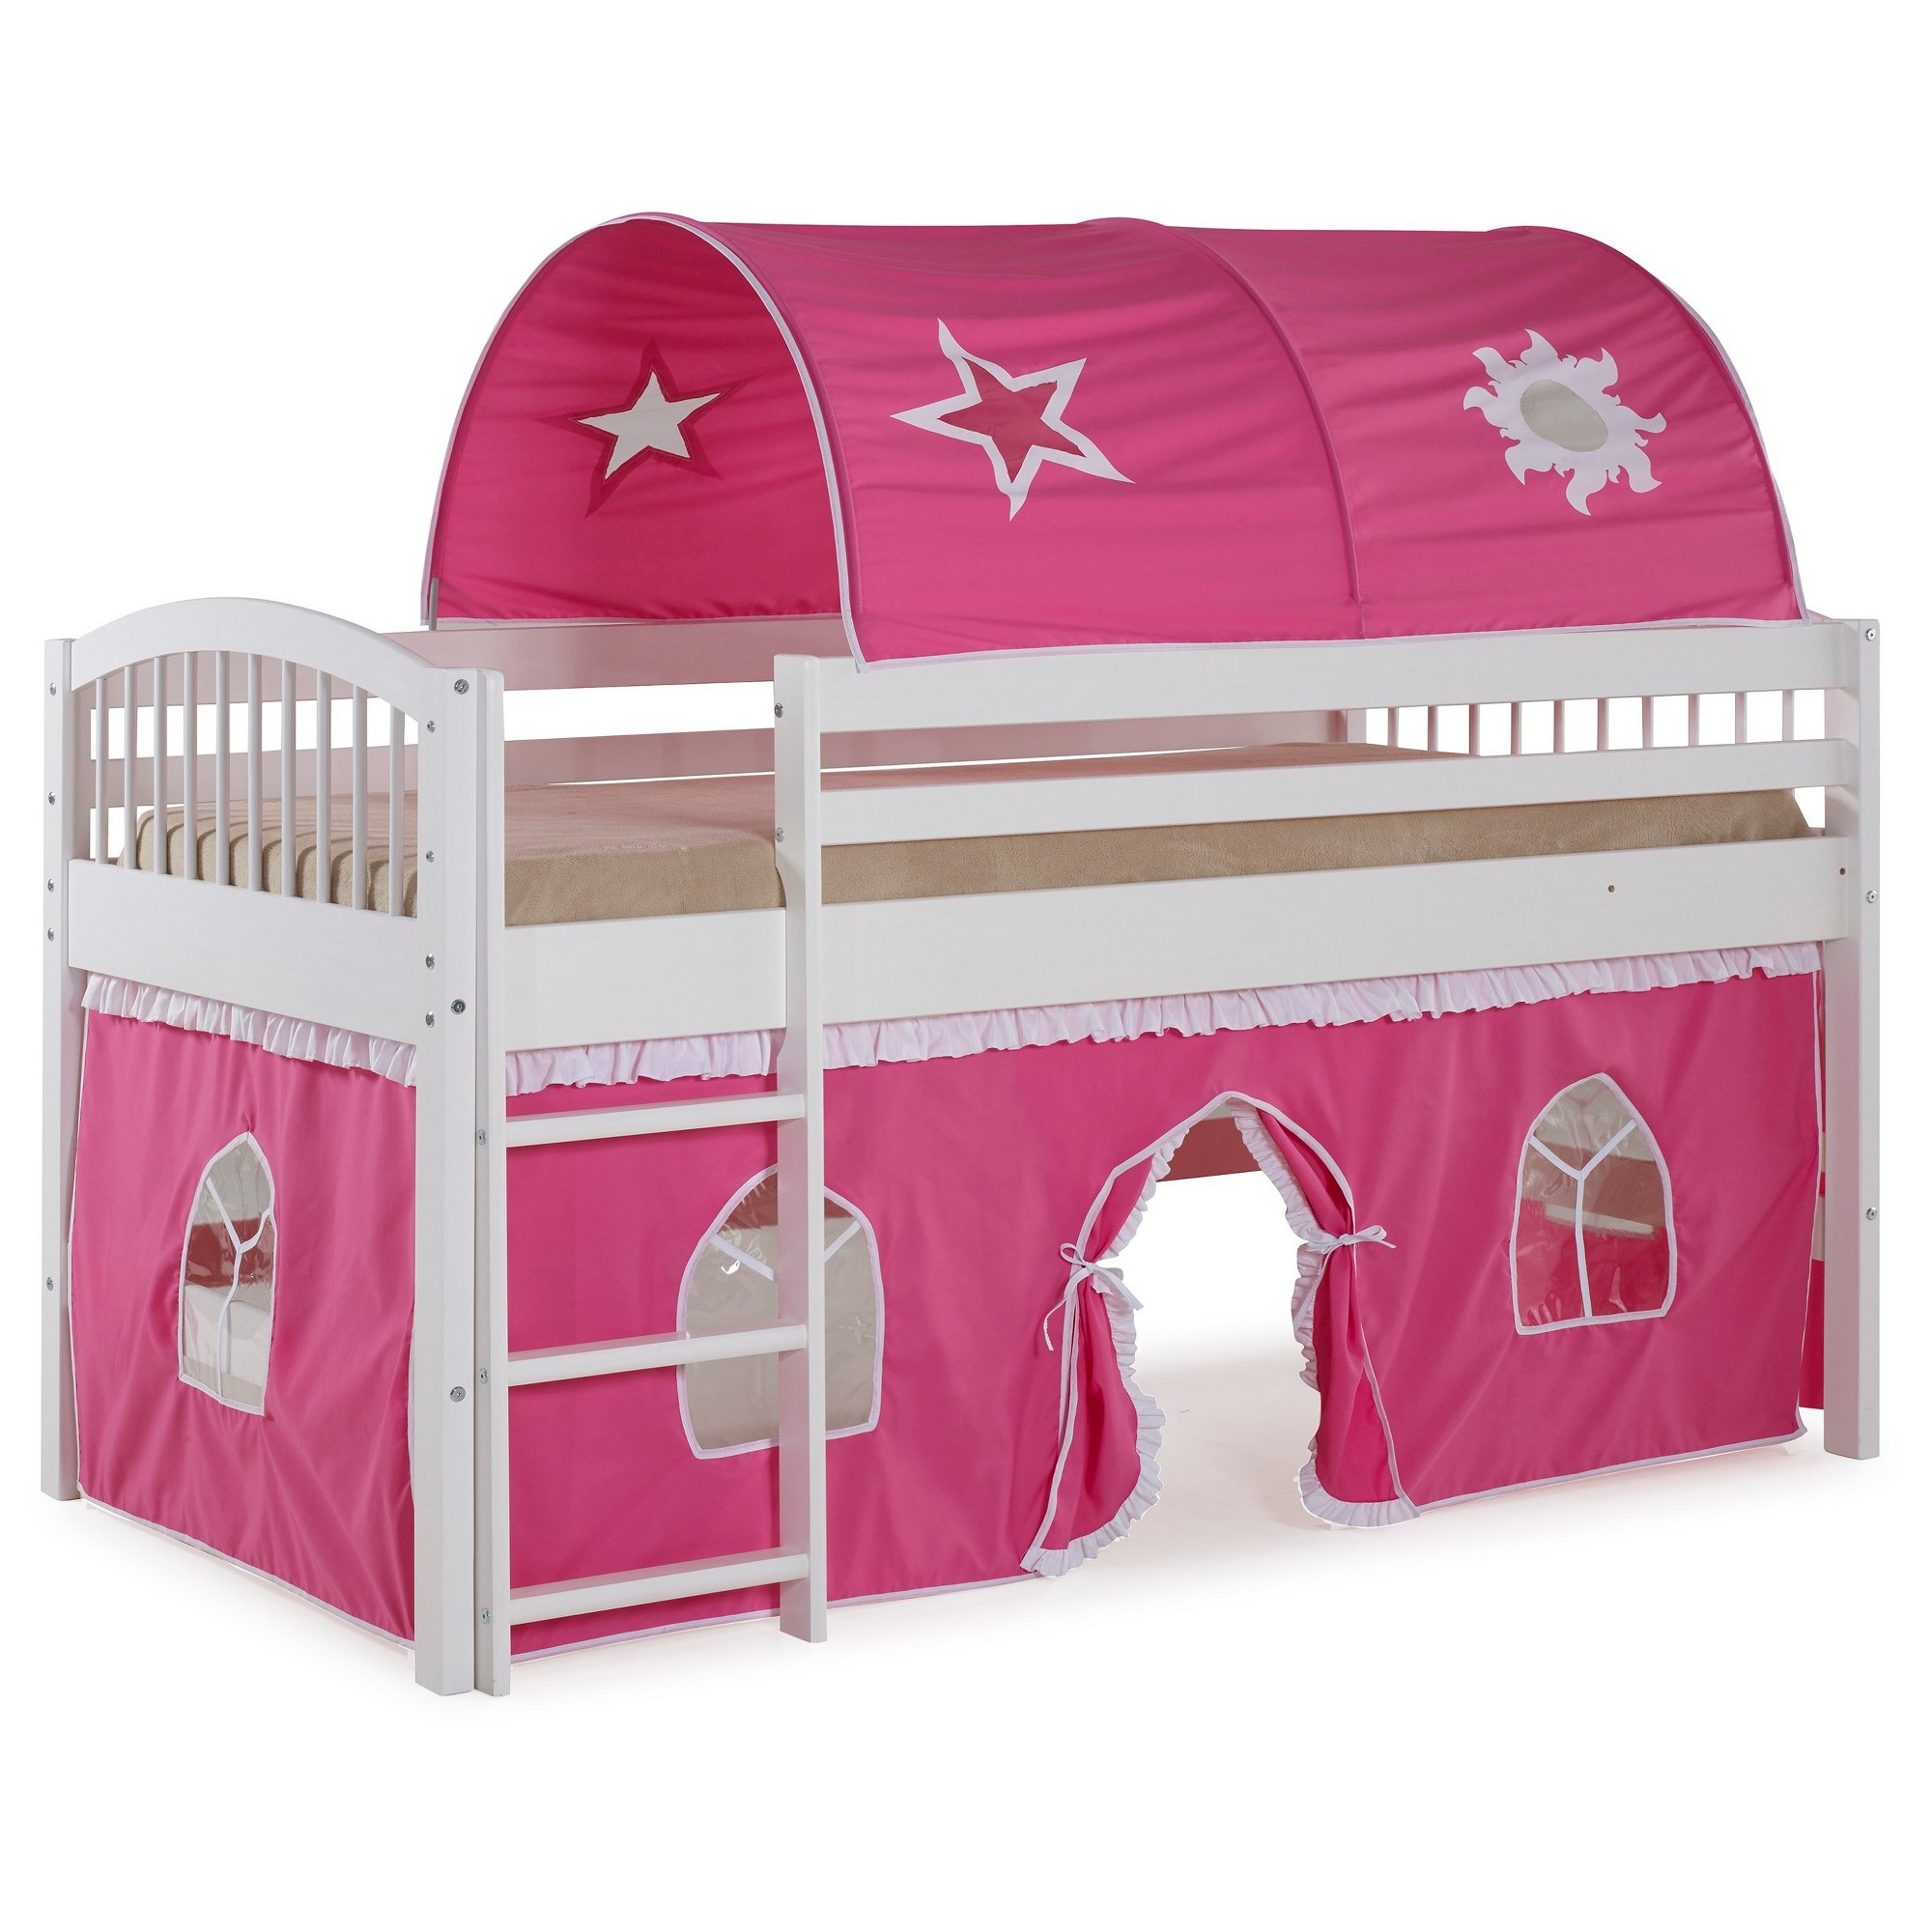 Twin Addison Junior Loft Tent Bed White/Pink Alaterre